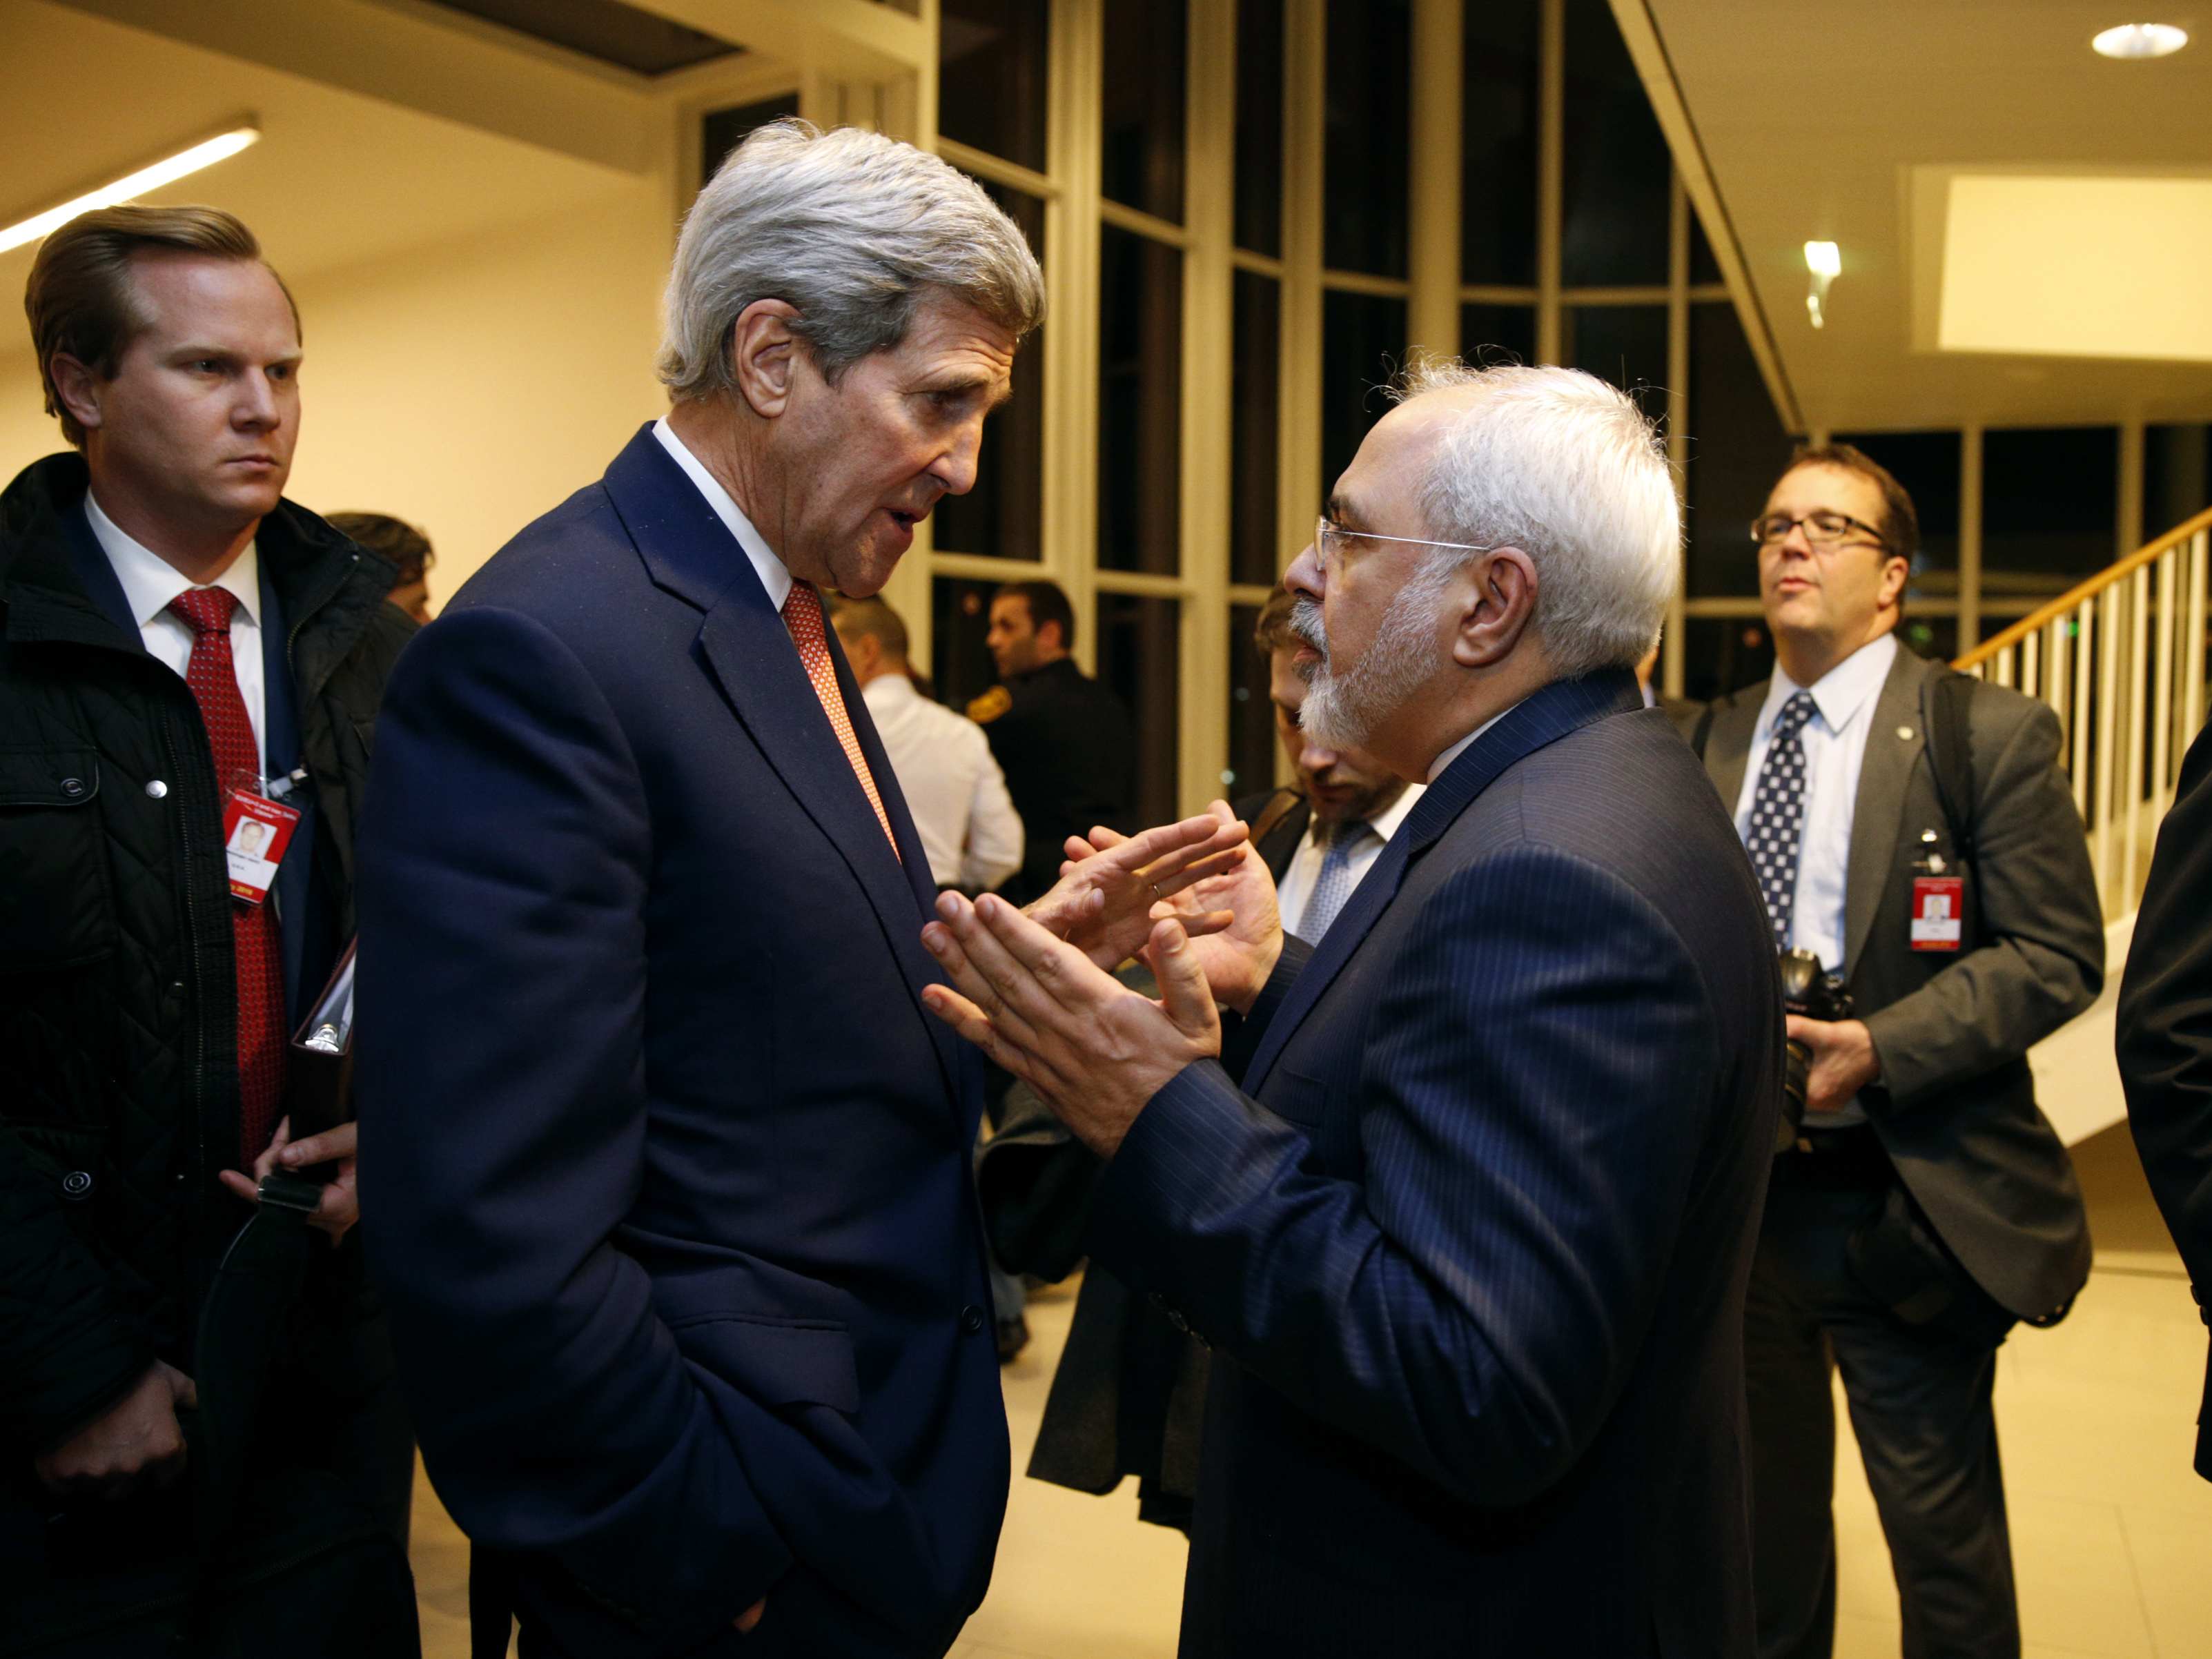 Secretary of State John Kerry talks with Iranian Foreign Minister Mohammad Javad Zarif in Vienna on Jan. 16, after the International Atomic Energy Agency verified that Iran met all conditions under the nuclear deal. The accord is now one-year-old. Iran is seen as abiding by the requirements of the deal, but its relations with the U.S. and other rivals have not improved on other fronts. (Photo by Kevin Lamarque/AP)